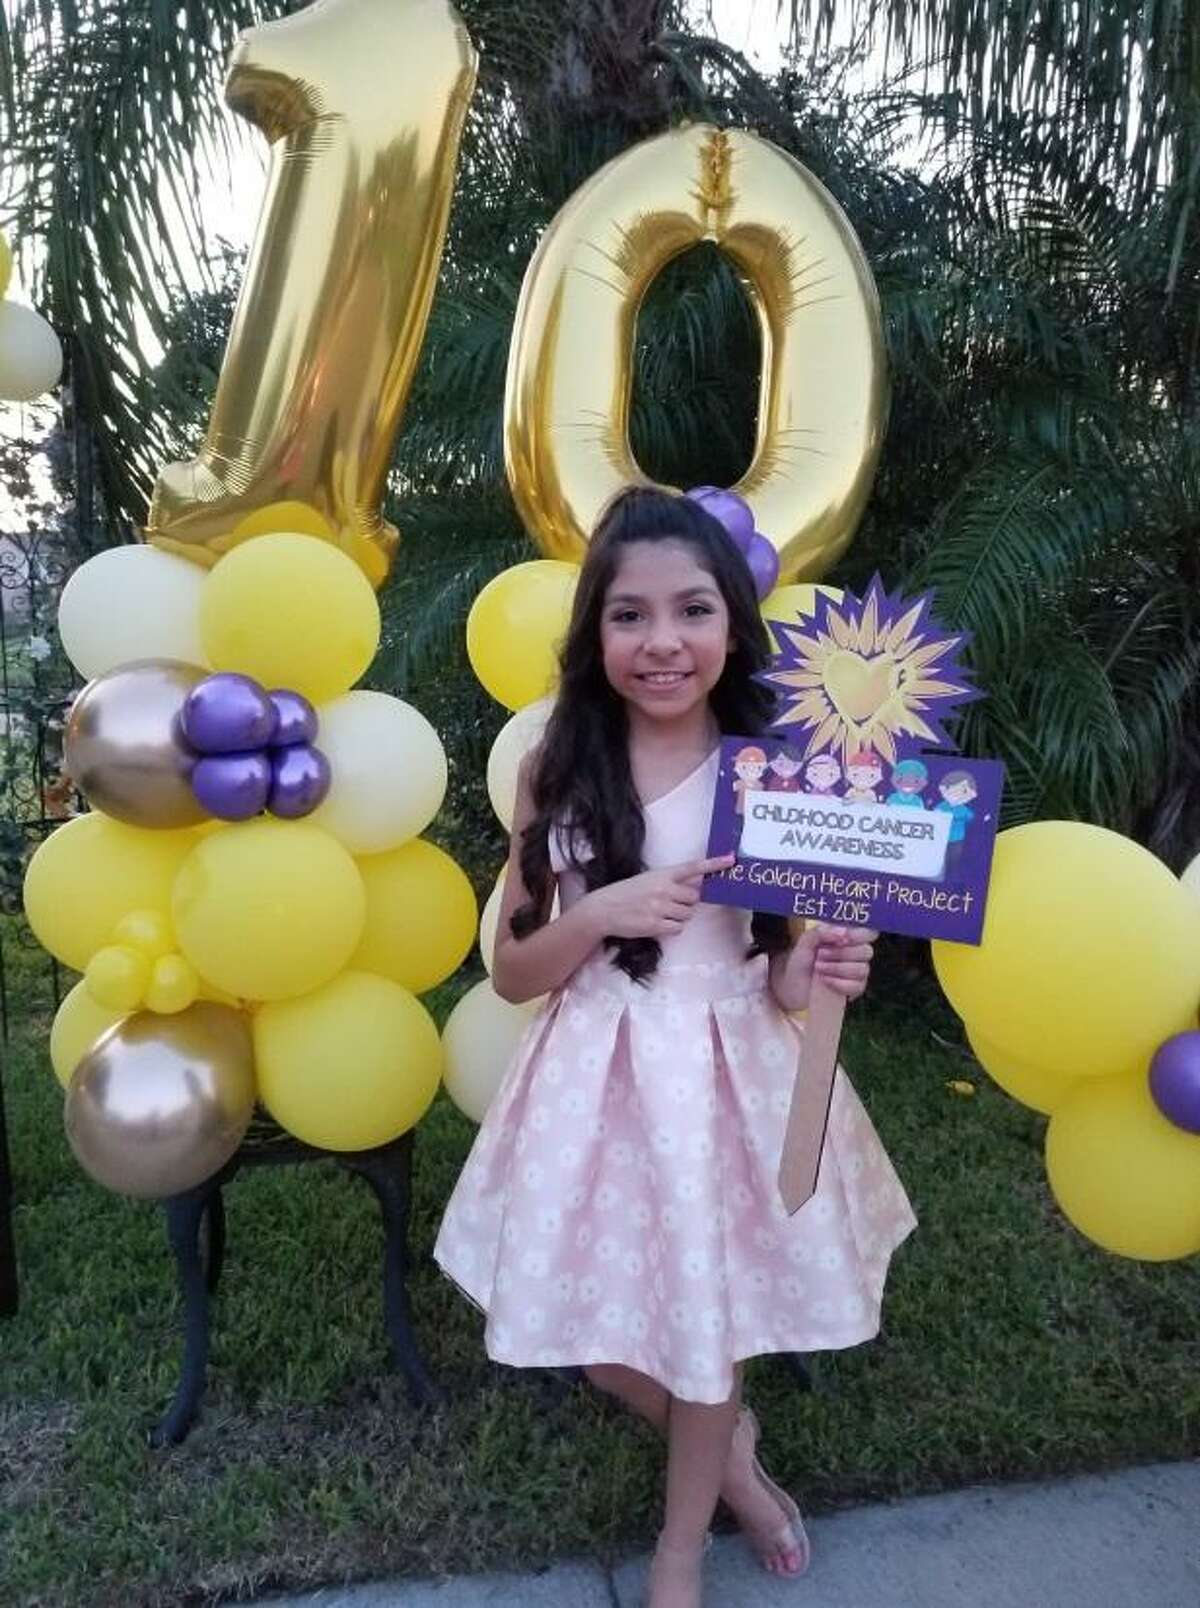 Miss Little Laredo Ana Regina Guerra requested donations for the Golden Heart Project in place of presents on her 10th birthday.